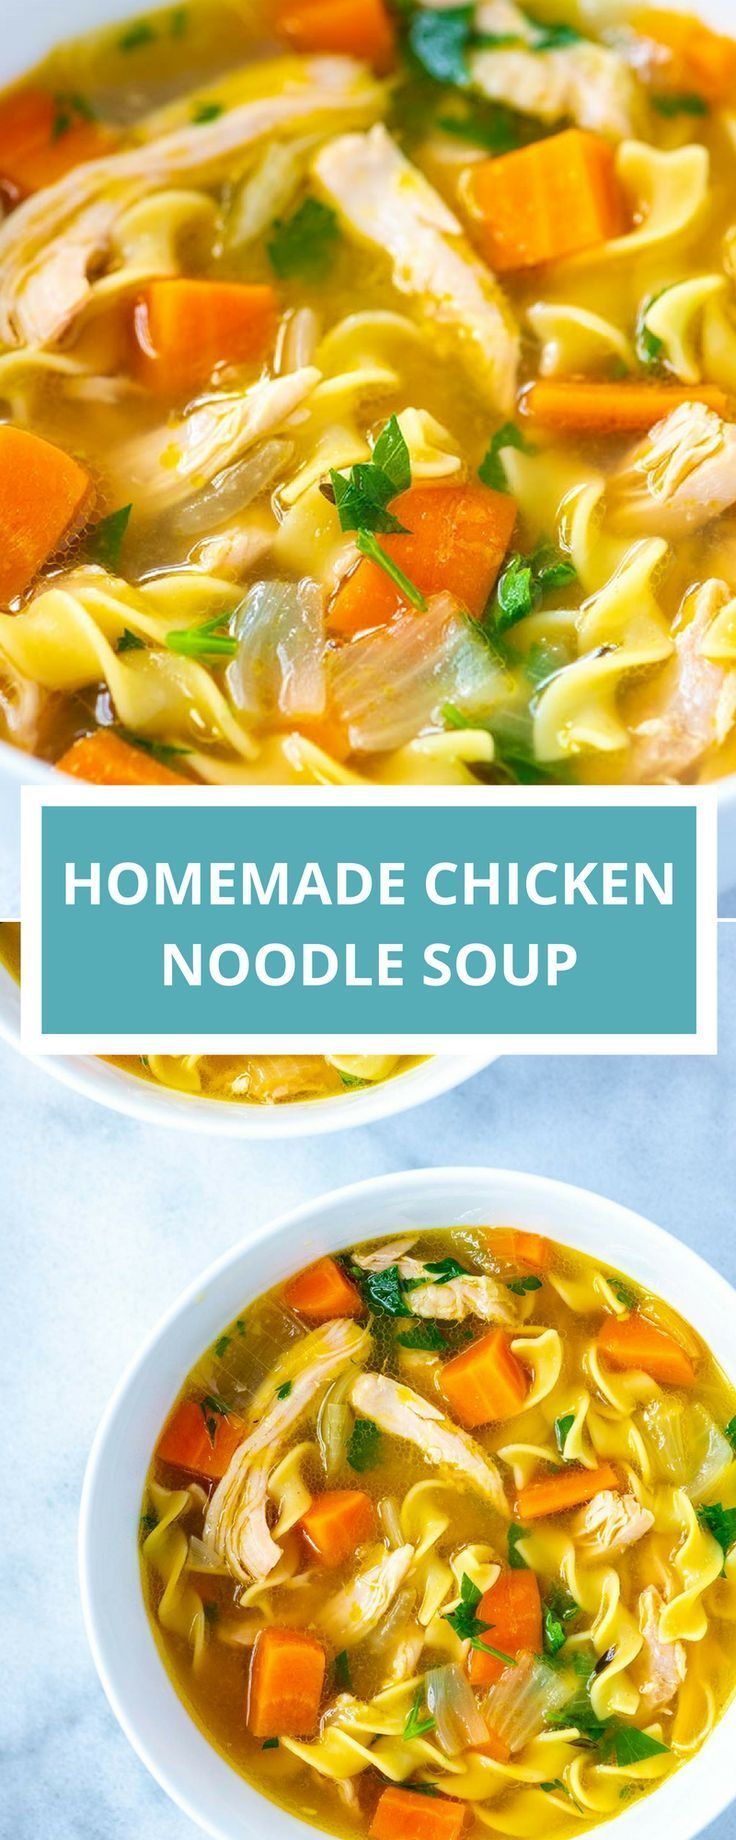 Ultra Satisfying Chicken Noodle Soup Recipe Soup Recipes Chicken Noodle Chicken Noodle Soup Recipe Homemade Chicken Noodle Soup Homemade